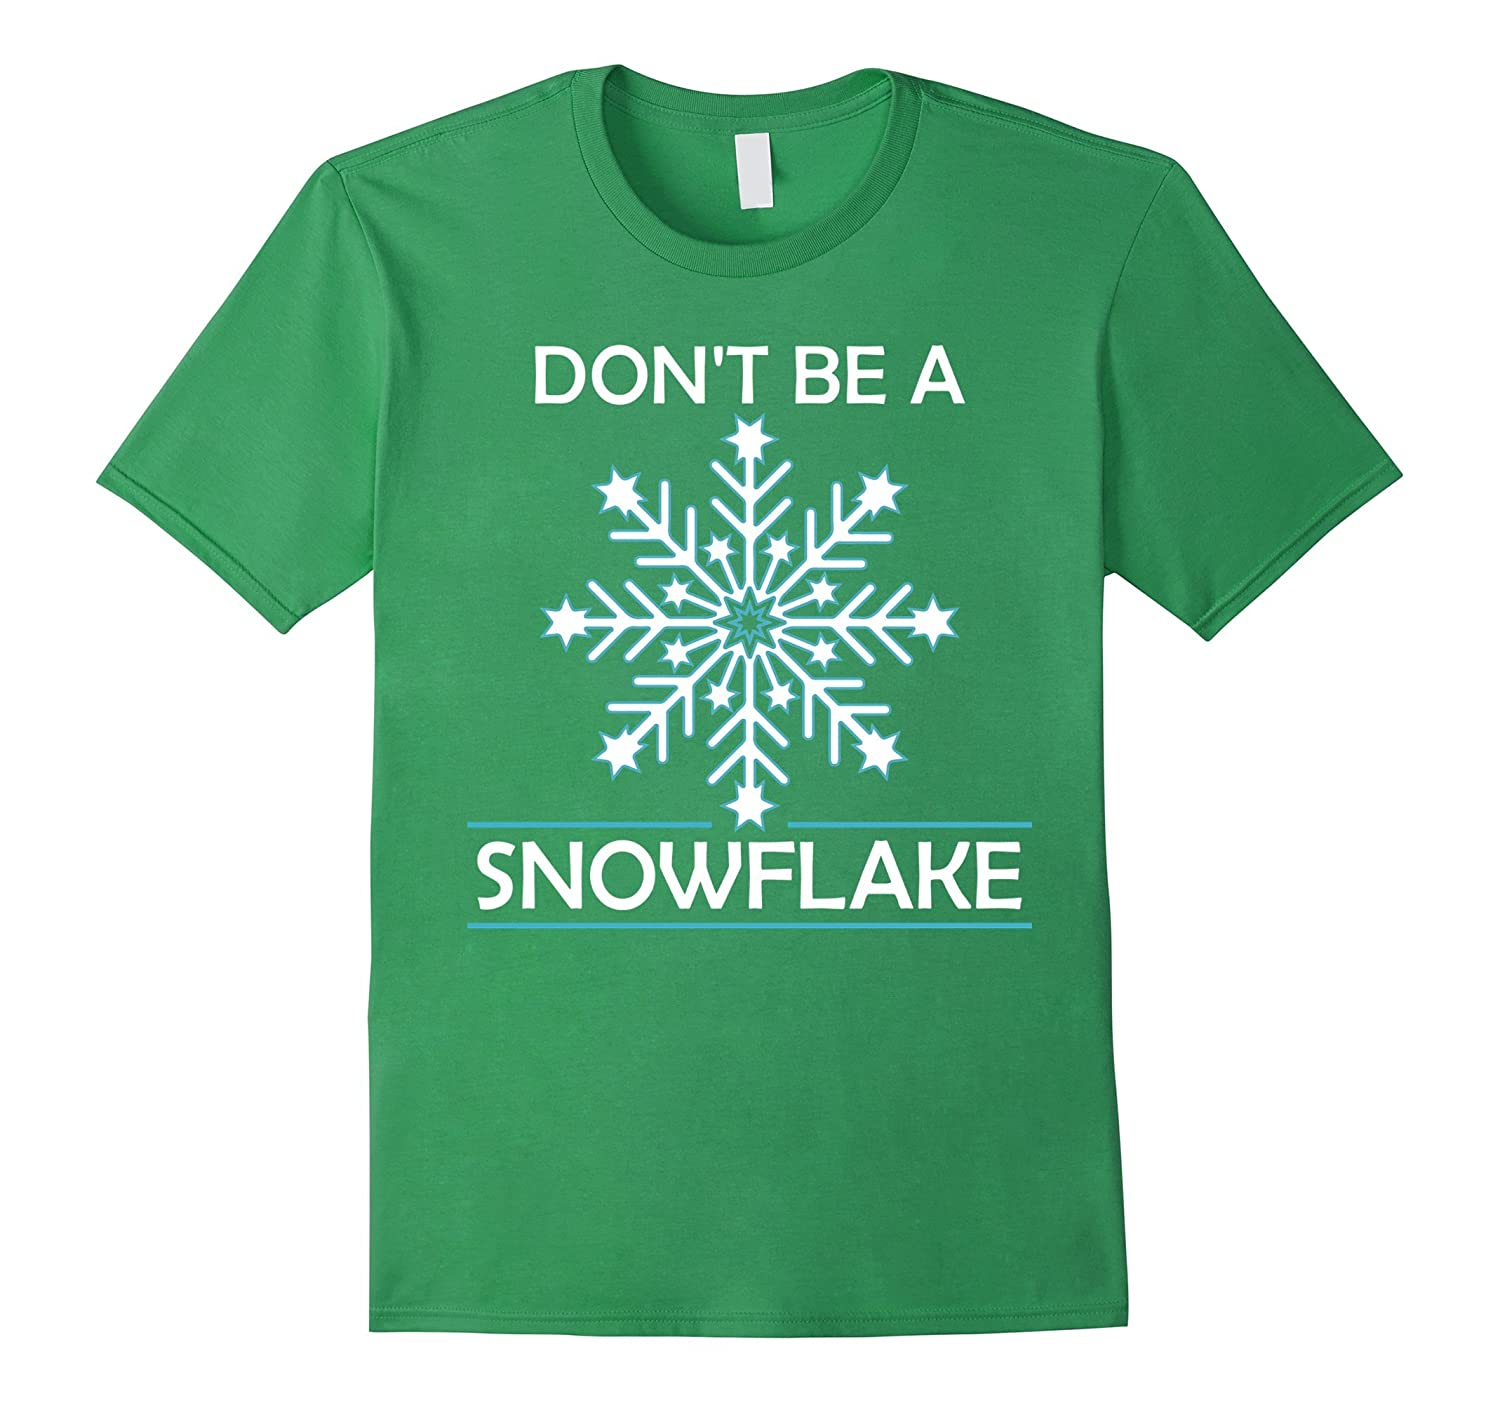 30bf654fa Don't Be A Snowflake - Funny Conservative T-Shirt-ANZ ⋆ Anztshirt